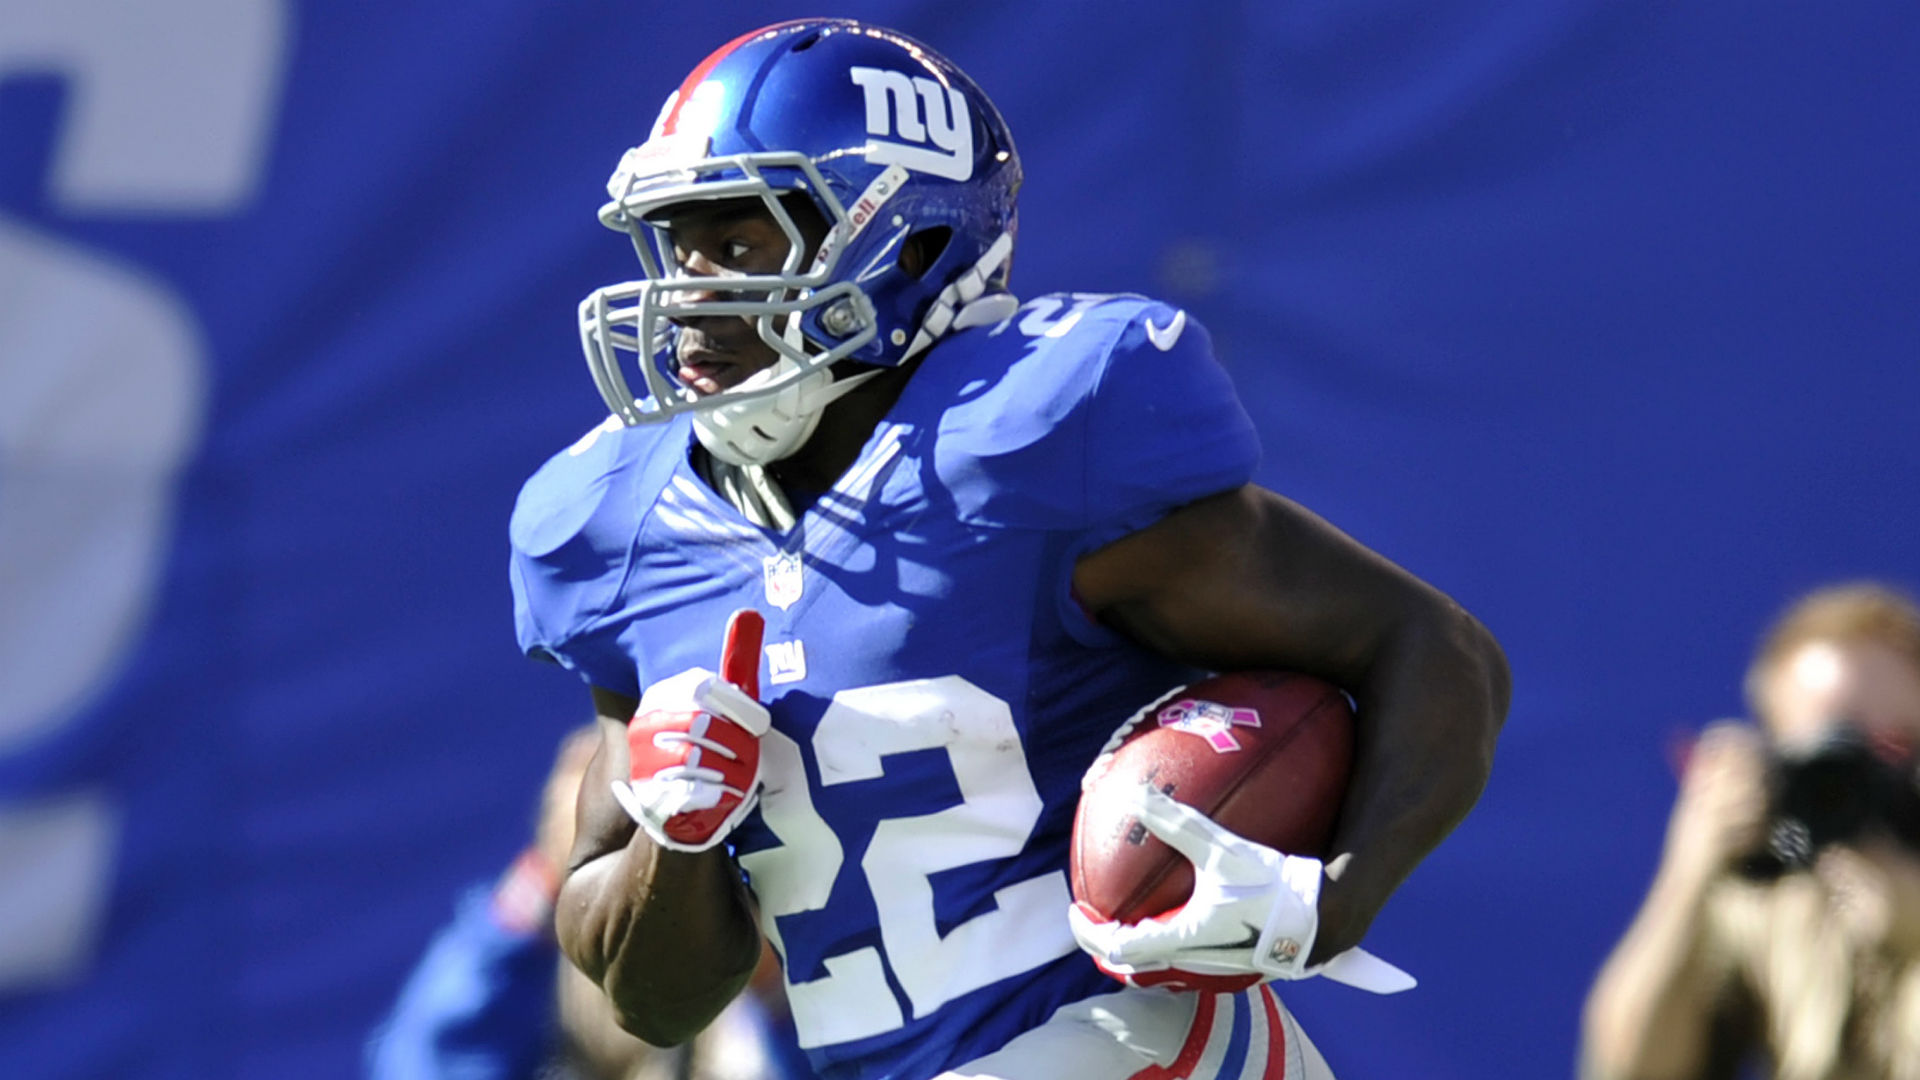 Giants' David Wilson doesn't receive medical clearance